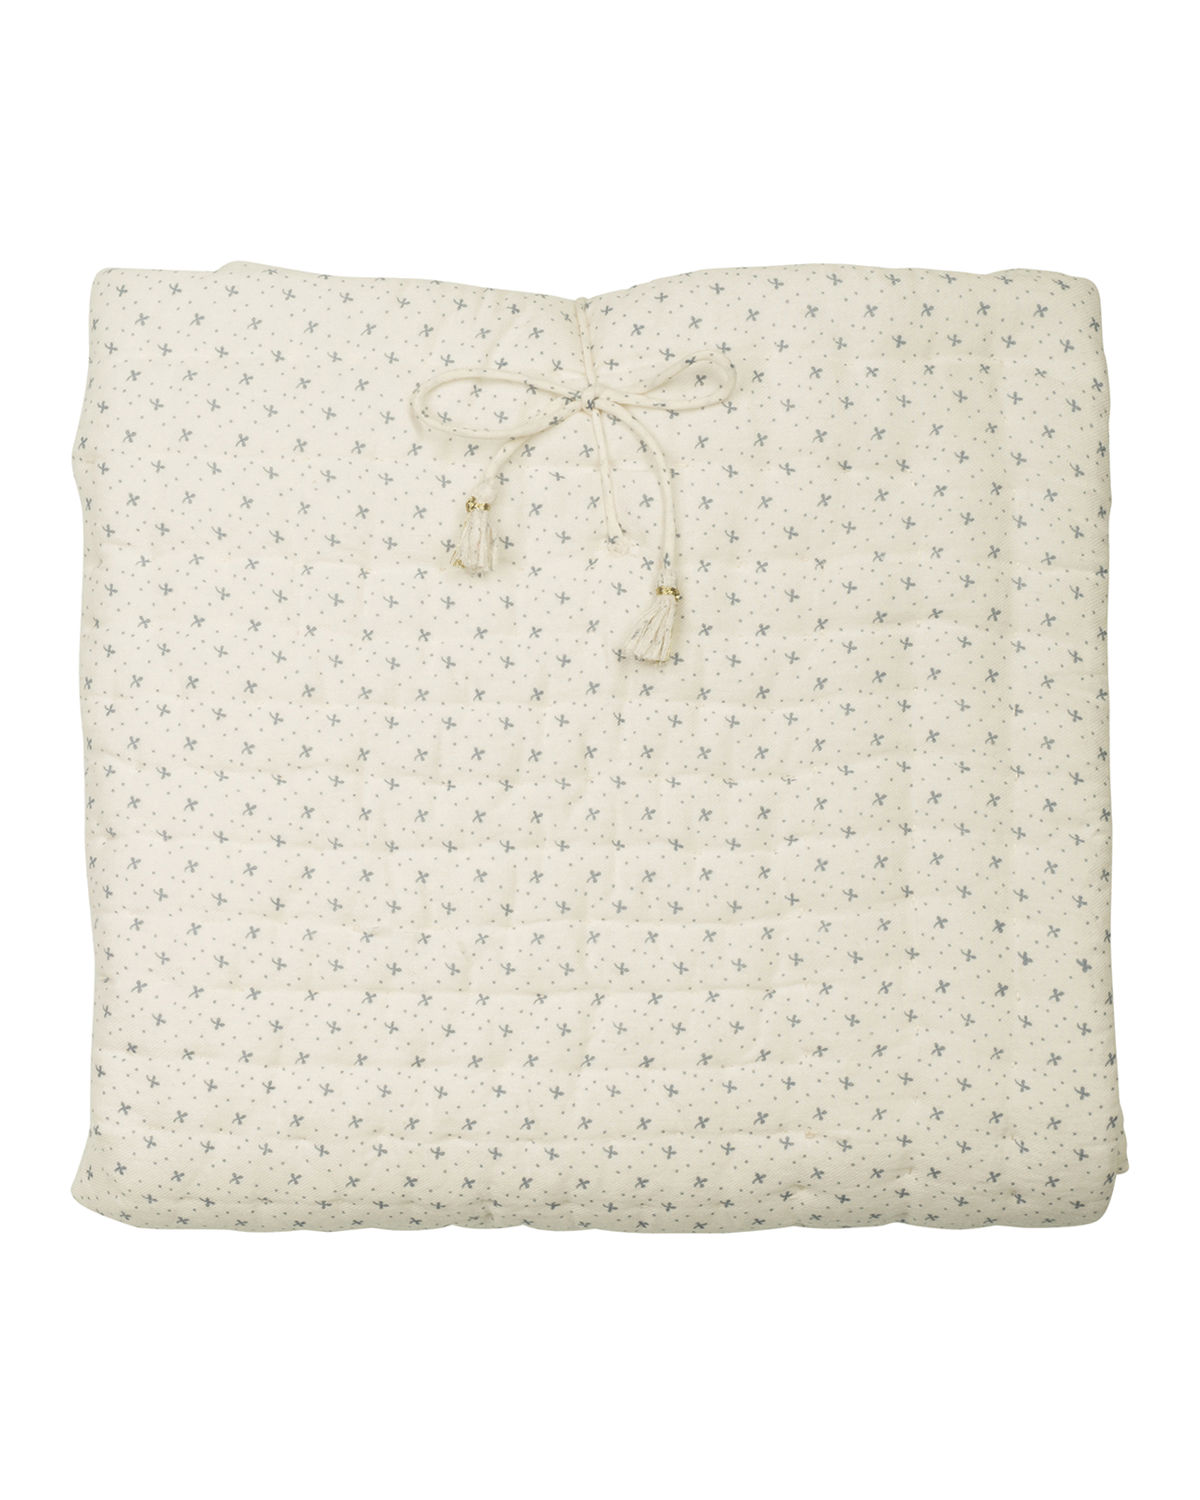 QUILTED FLORAL BLANKET